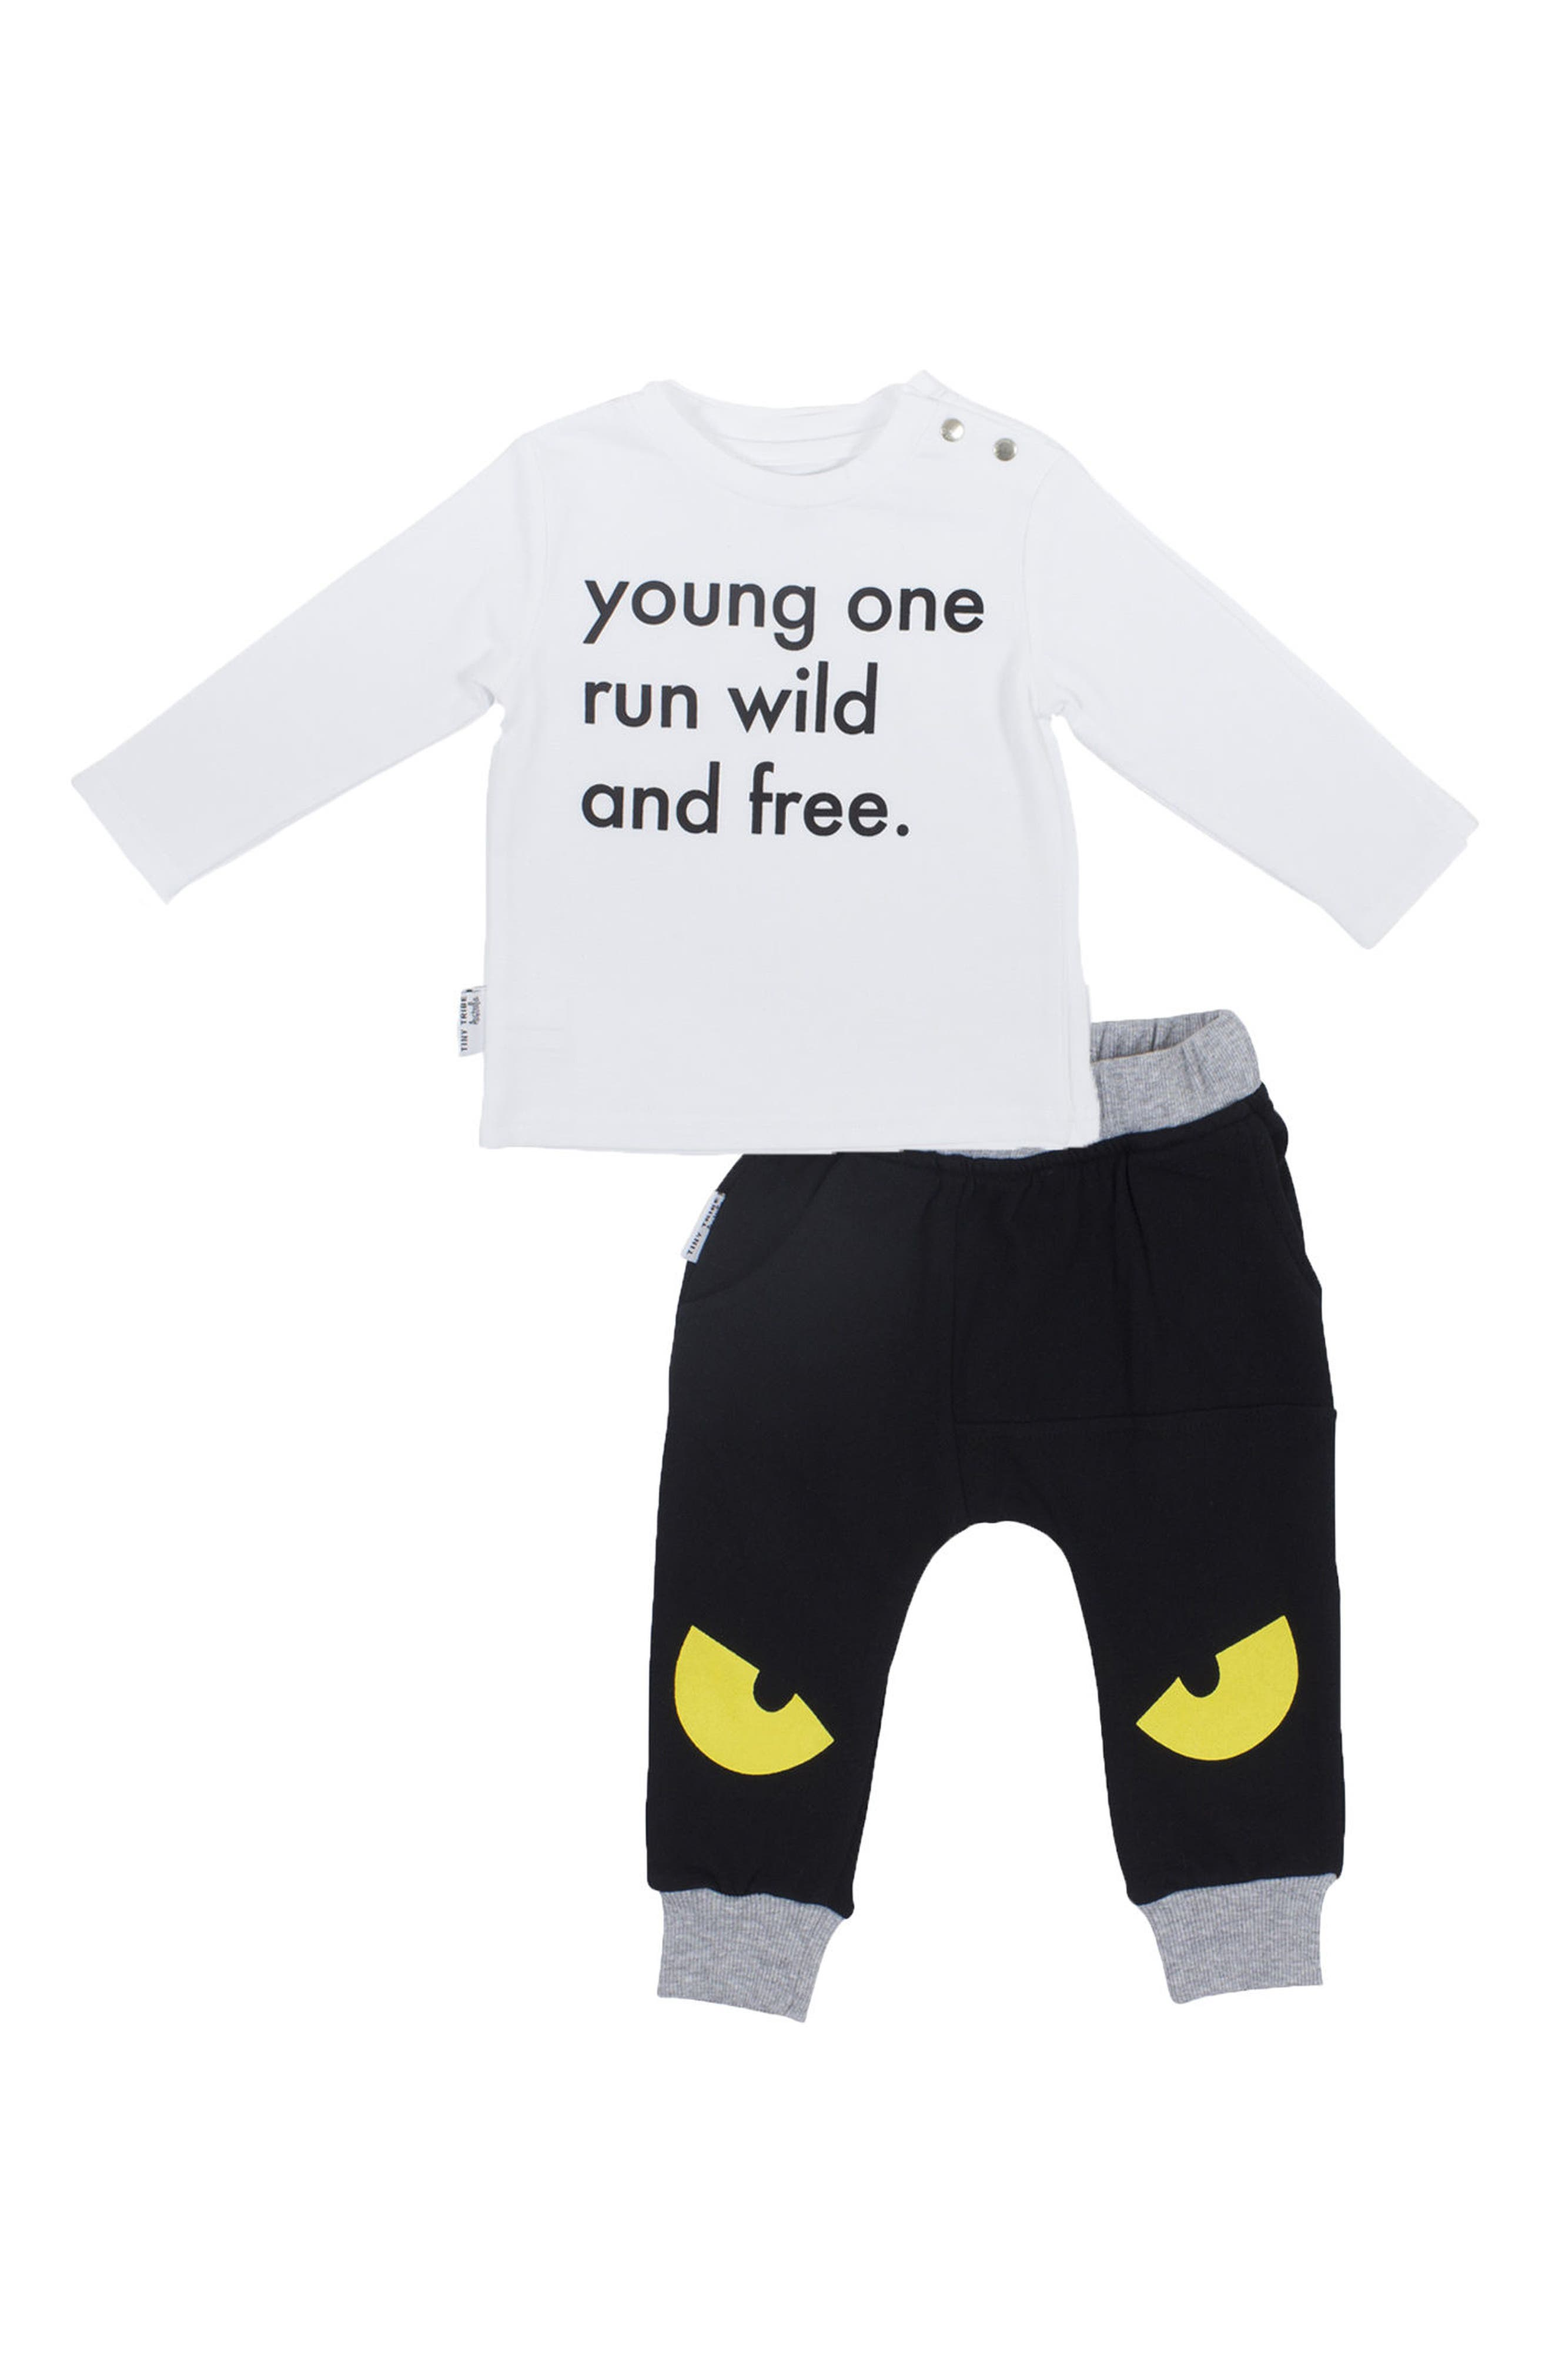 Run Wild & Free T-Shirt & Jogger Pants Set,                             Main thumbnail 1, color,                             White/ Black